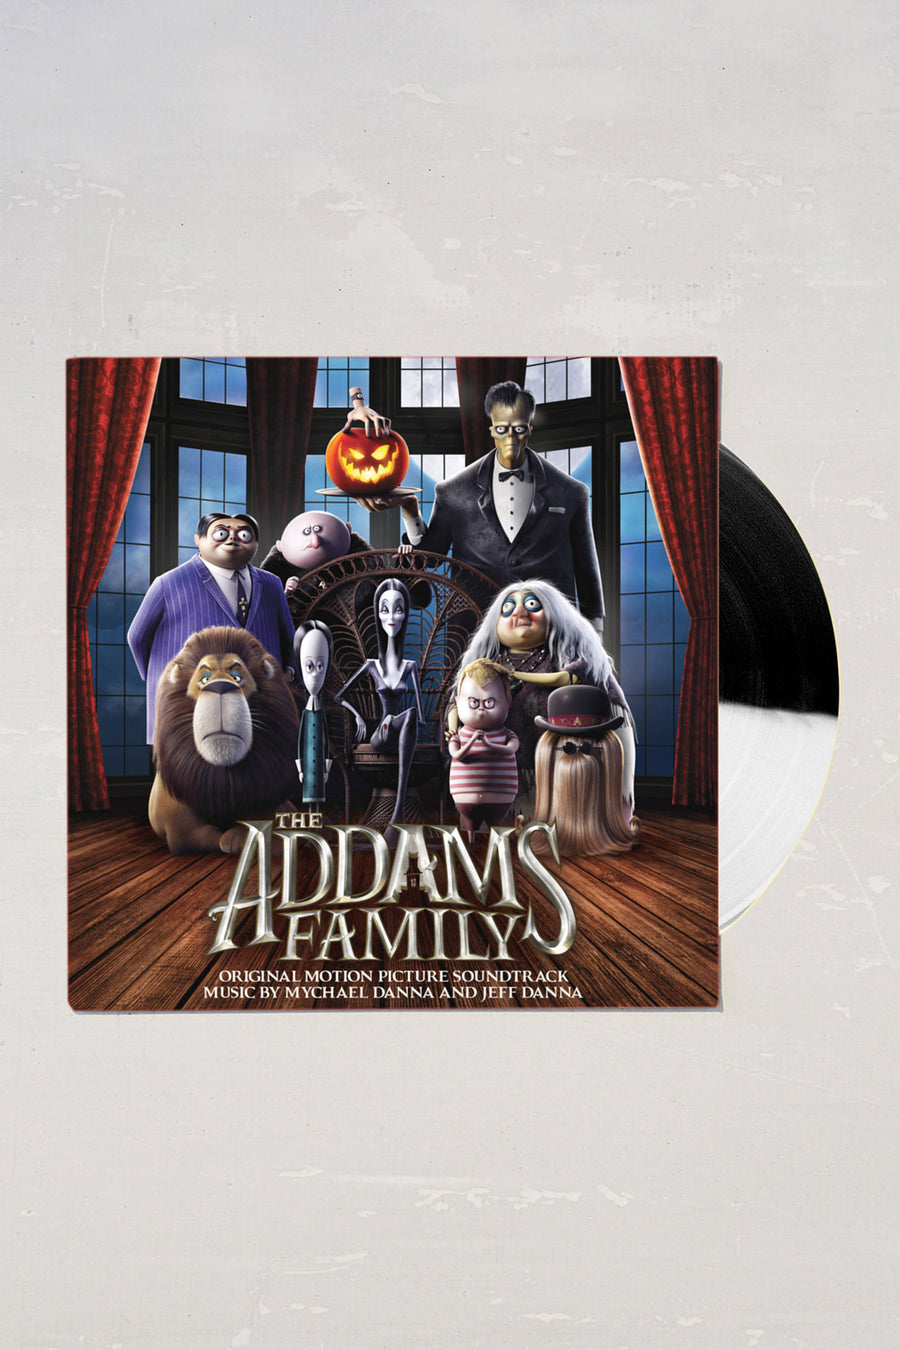 The Addams Family (Original Movie Soundtrack) Limited LP Exclusive Black and White Vinyl